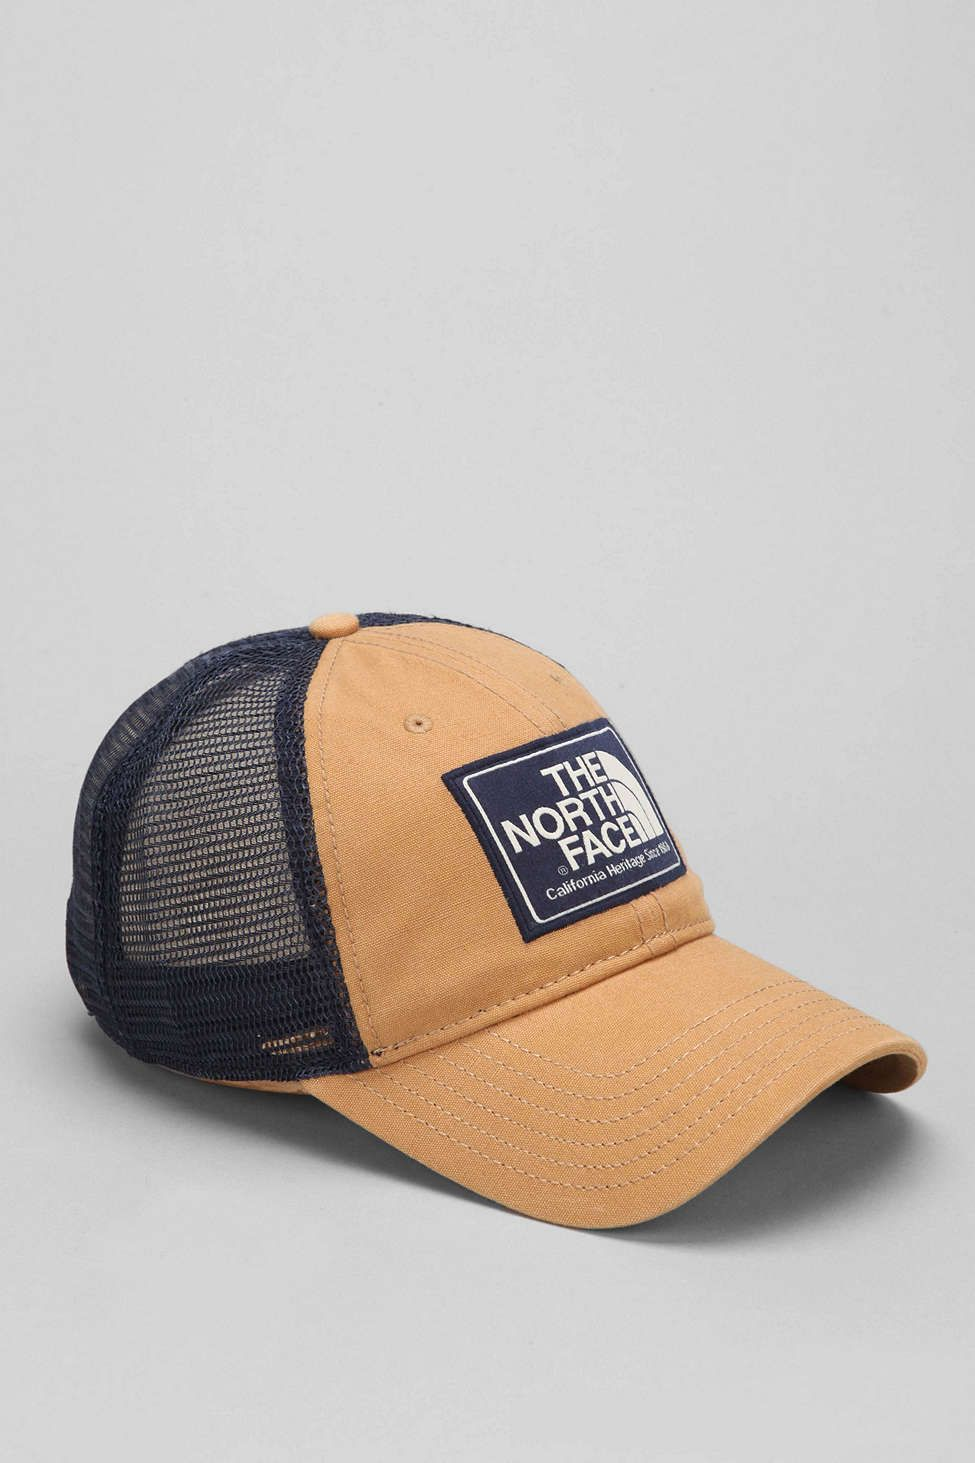 The North Face Mudder Trucker Hat  8f69bbb2ac93